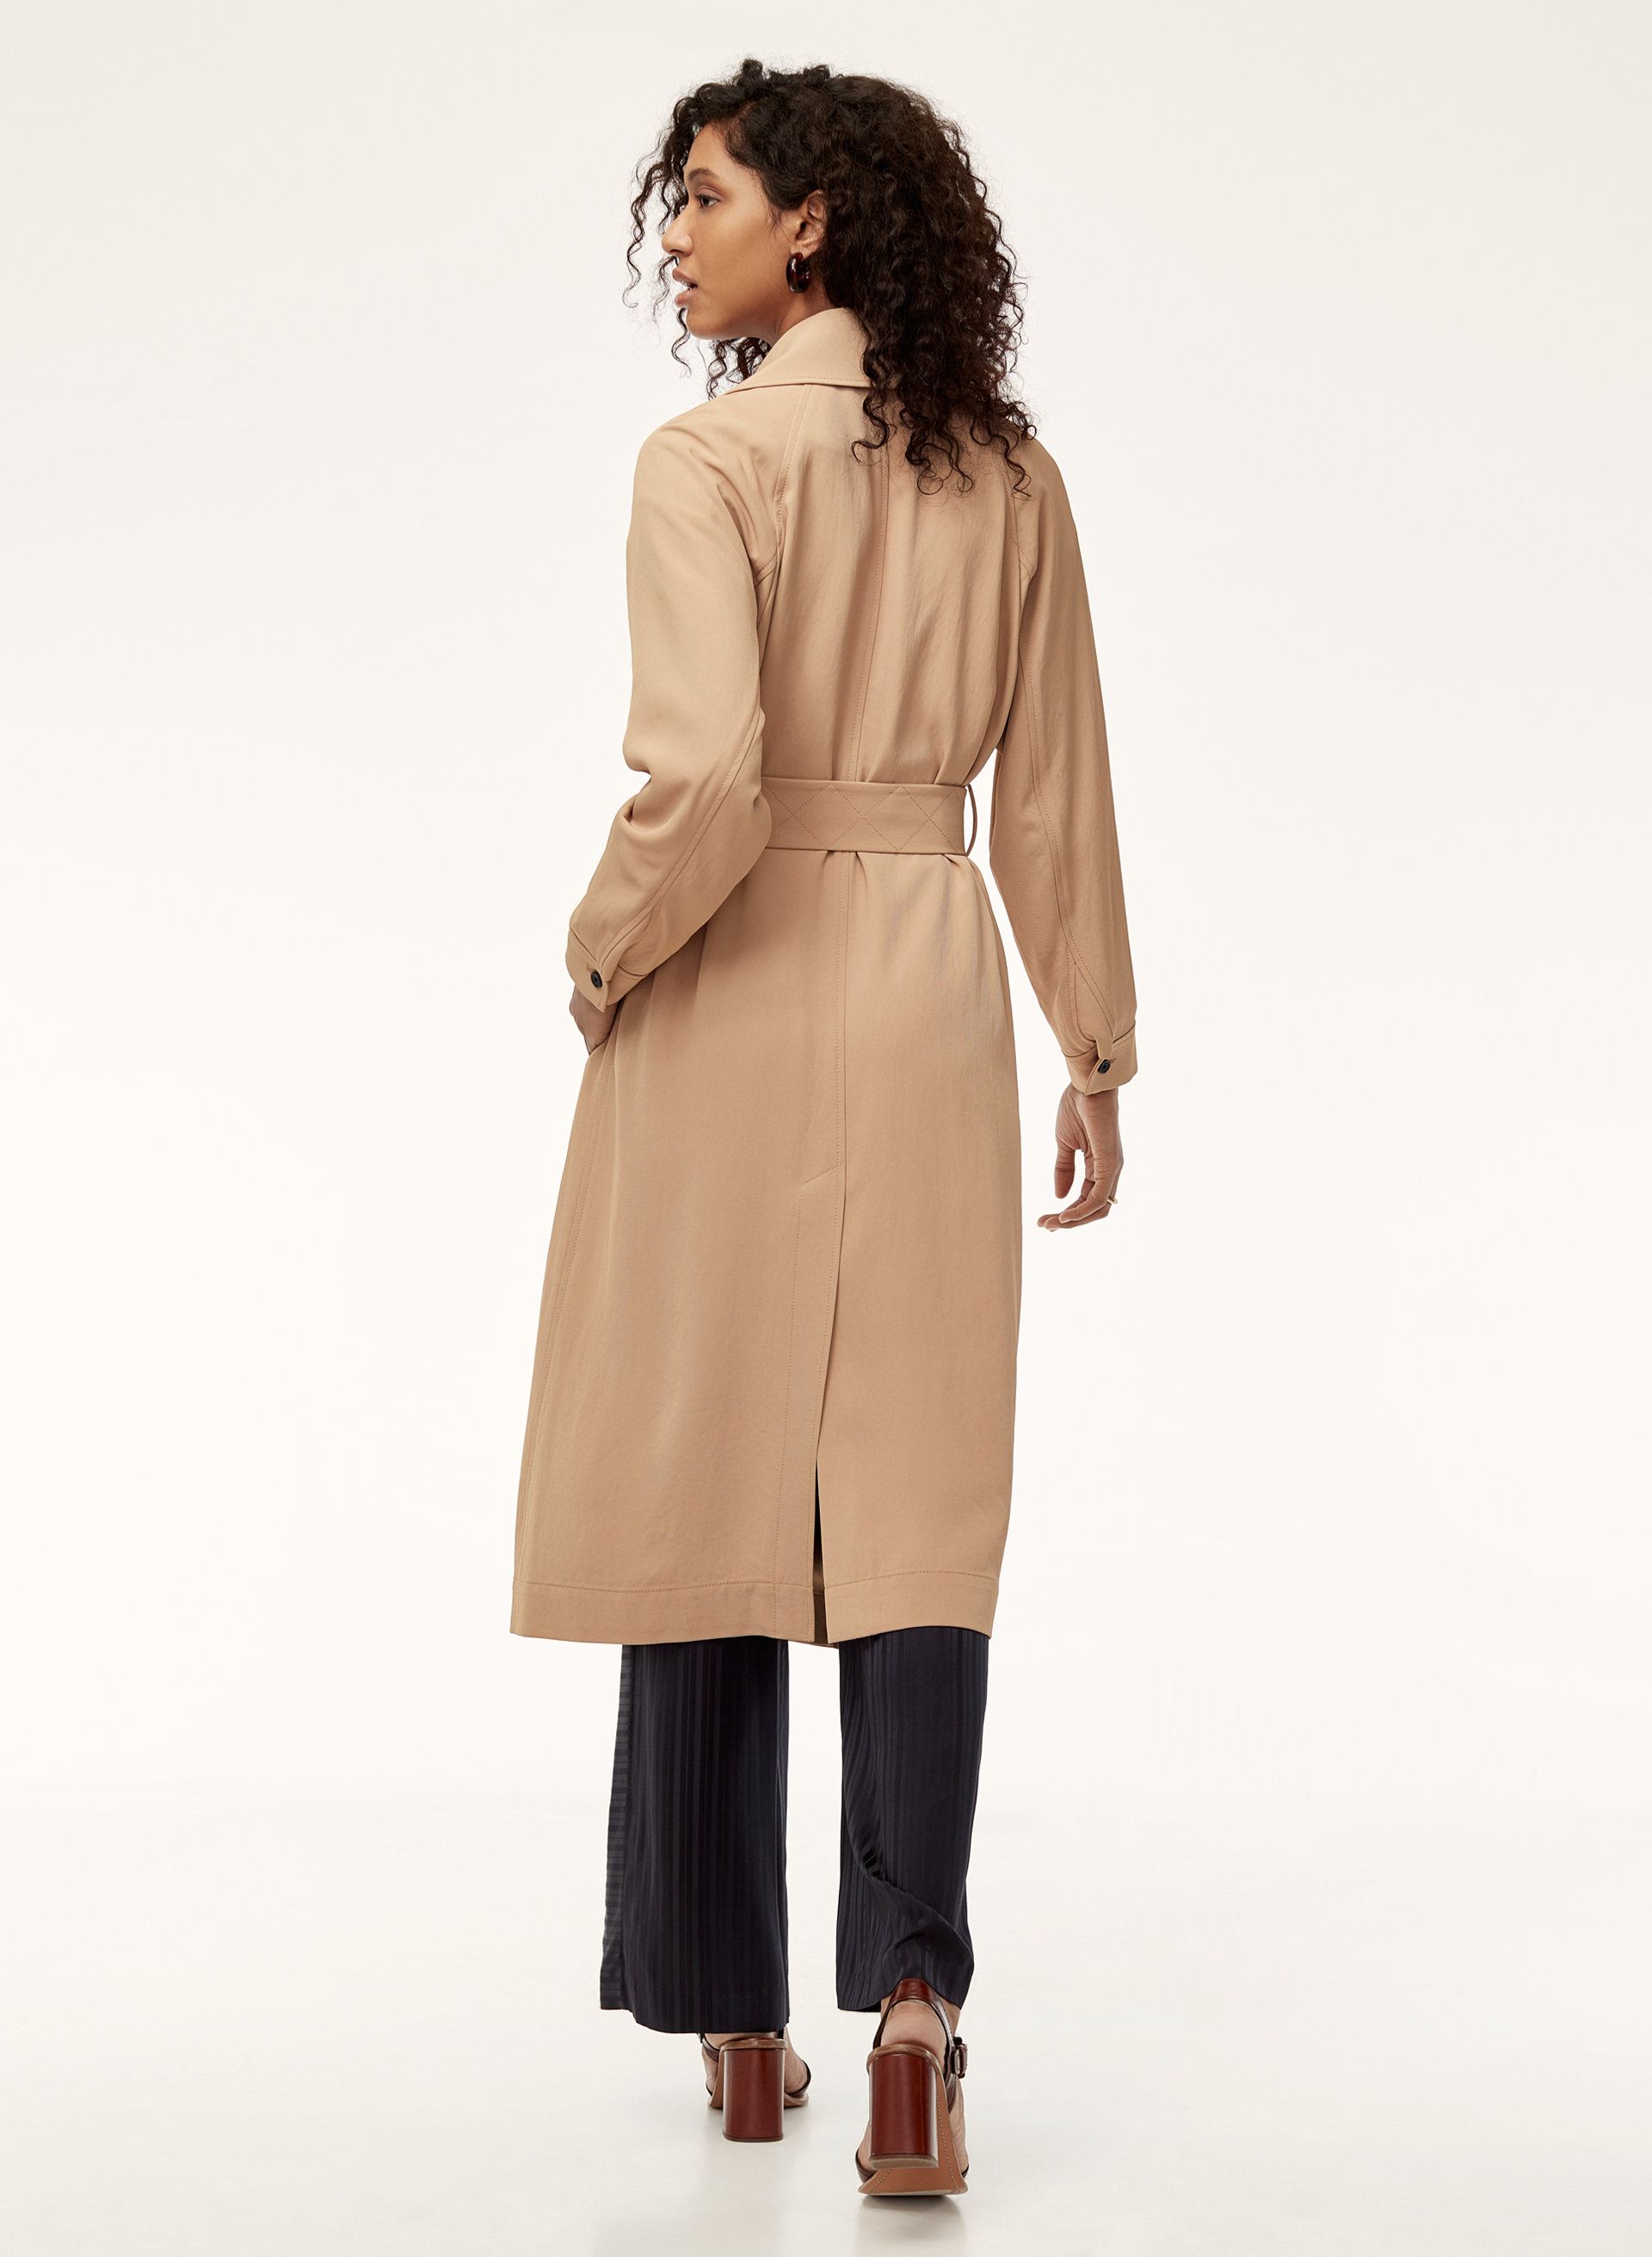 clothing drape duster oversized camel women coat coats missguided waterfall drapes jackets for